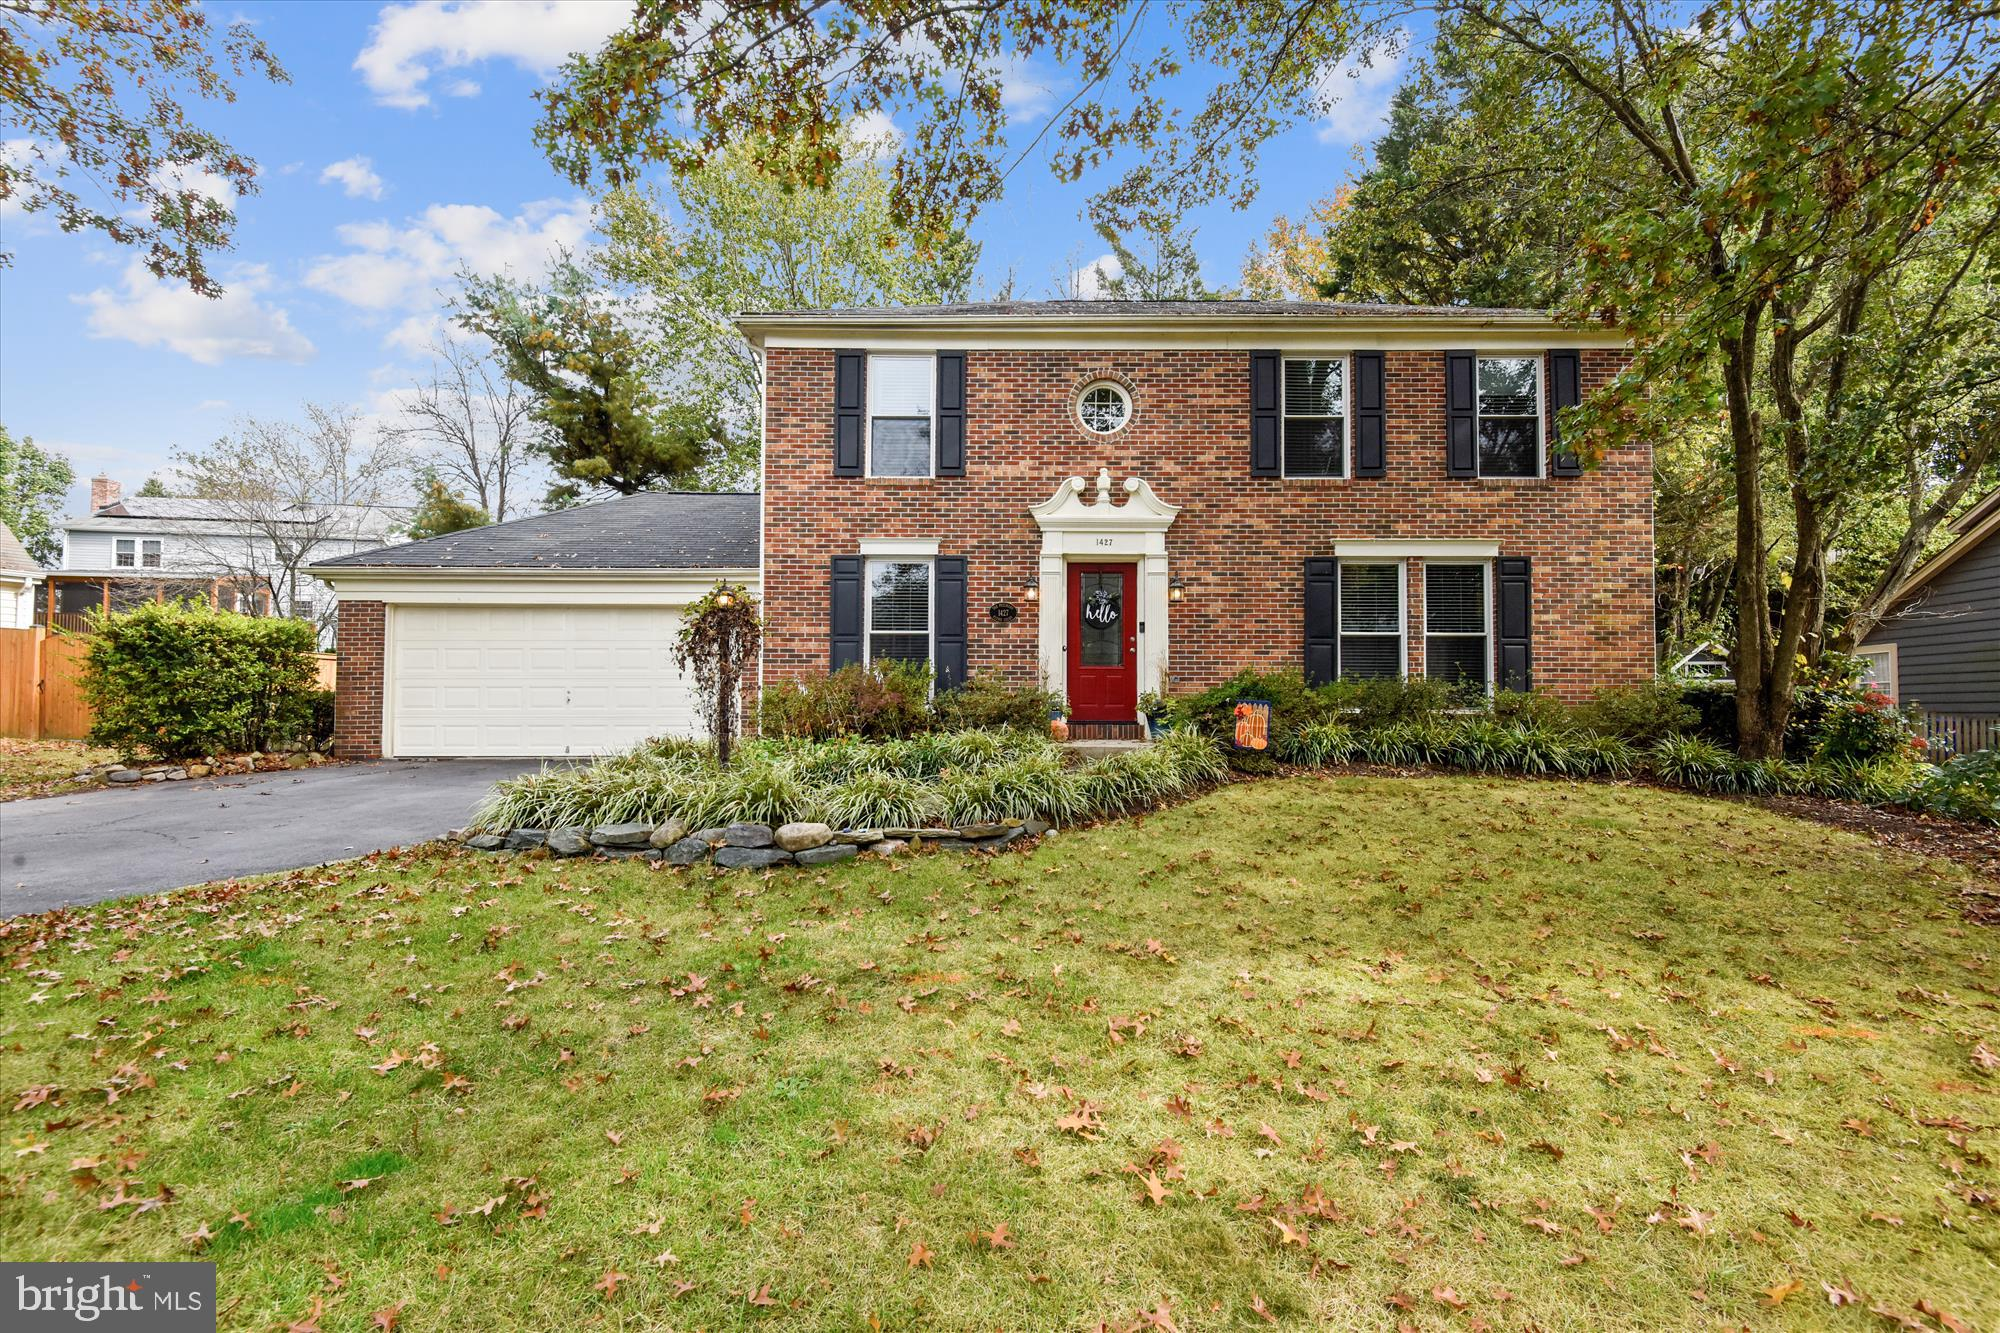 Built in 1988, this spectacular Burlington model brick colonial is located on a quiet cul-de-sac in Hastings Hunt. The home sits on a 8,693 sq ft lot, with a flat yard, playset, and small fish pond with a pump. The main level features hardwood floors and recessed lighting. The kitchen was renovated in 2015 complete with new white shaker cabinets, granite counters, stainless steel sink, stainless steel appliances, and opens to an eat-in kitchen and a cozy family room with fireplace and built-ins. The family room opens to a wooden deck overlooking the yard. The main level also a formal dining room, powder room, and former formal living space turned into a Covid home-school station. The upper level features a large owner's bedroom with walk-in closet, and en-suite bath renovated in 2018. There are 3 other bedrooms with great closet space that share a recently renovated hall bath with brand new dual-sink vanity, and a tub/shower. BONUS: Bedroom level laundry! A rare find. The lower level features a carpeted rec room, 3rd full bath with stand up shower, and a large storage room. Numerous upgrades include: new windows (2015), HVAC (2010), roof (2010). HOA fee is $140/quarter and includes trash/recycling and snow removal.